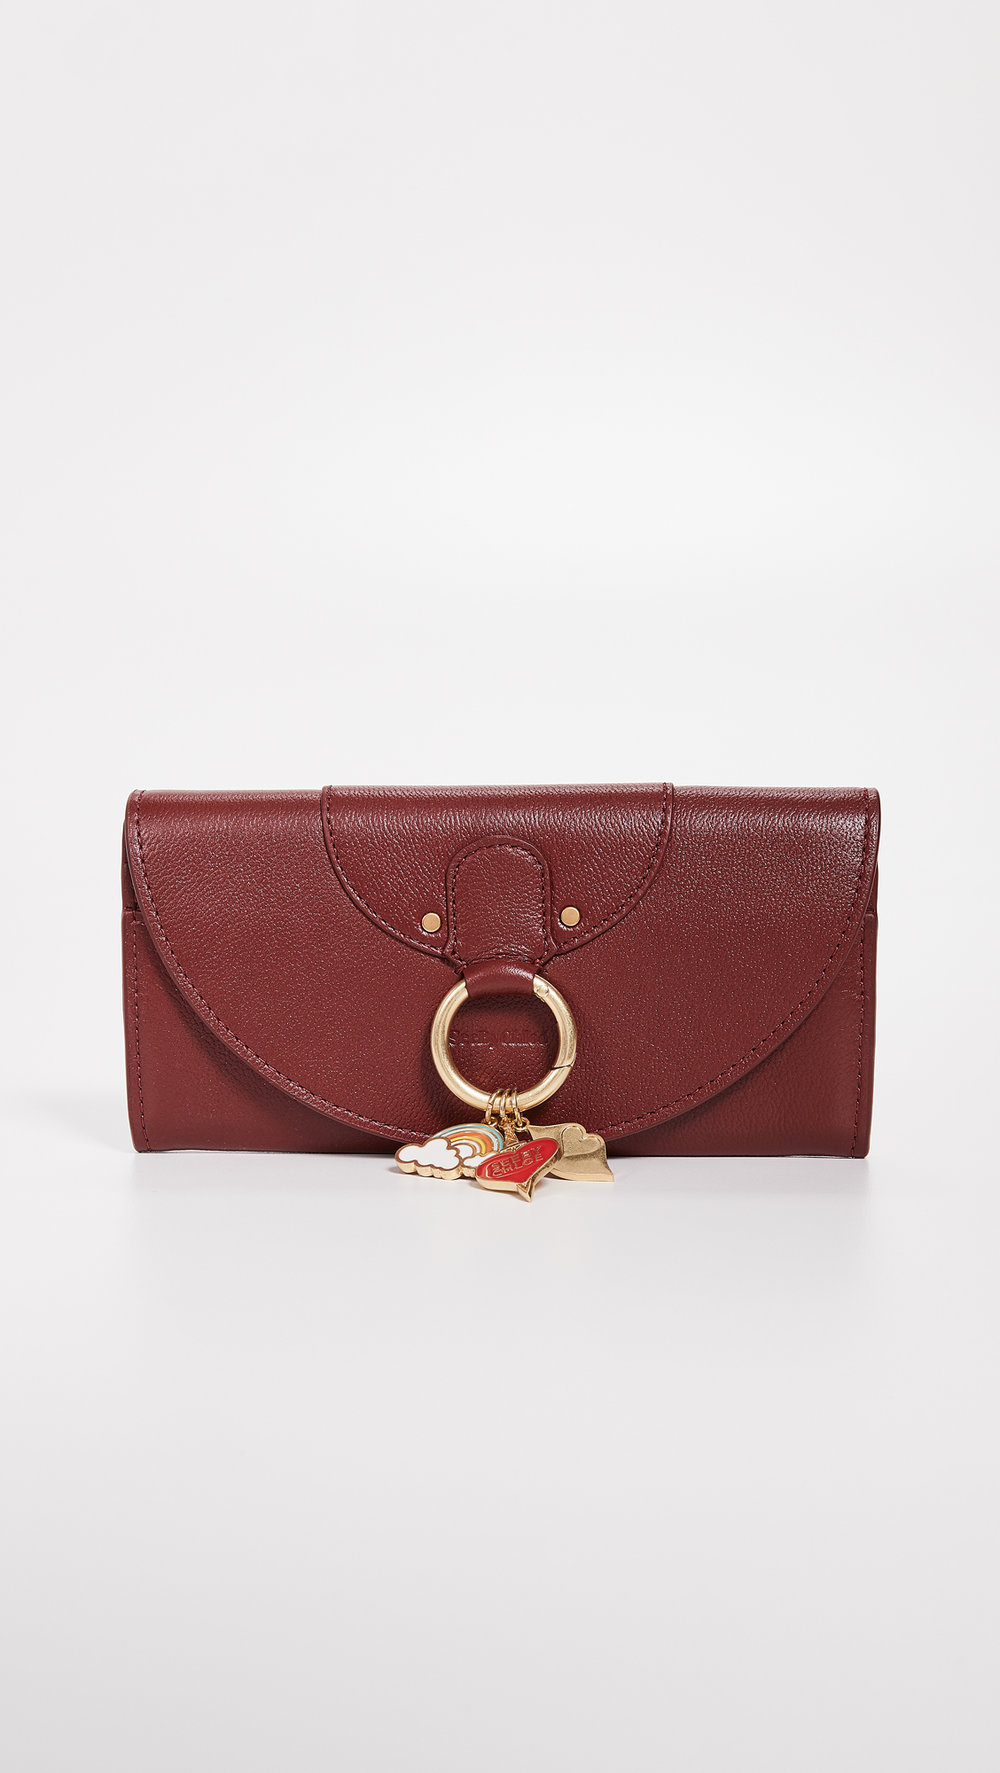 See by Chloe Wallet - Was: $225.00Now: $157.50